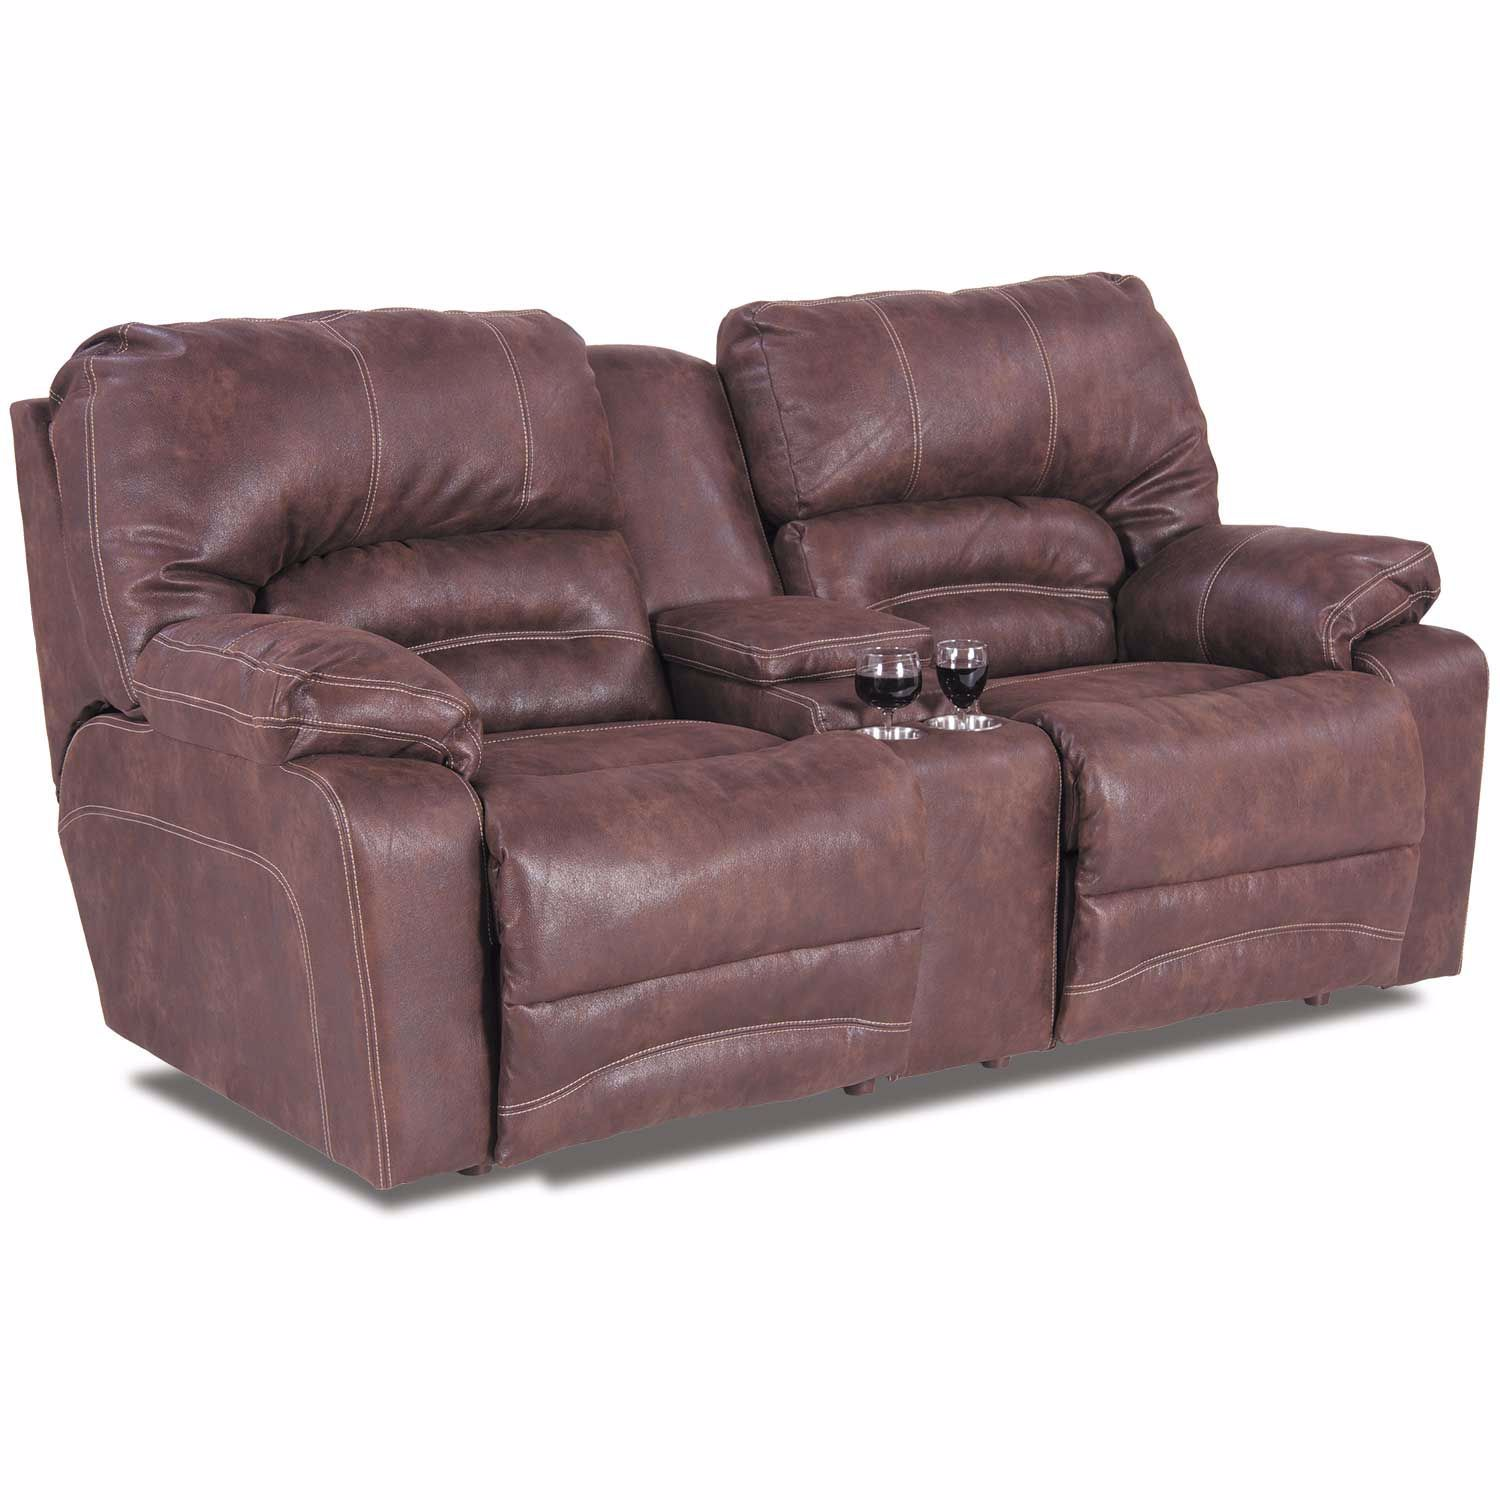 Super Legacy Reclining Console Loveseat Gmtry Best Dining Table And Chair Ideas Images Gmtryco